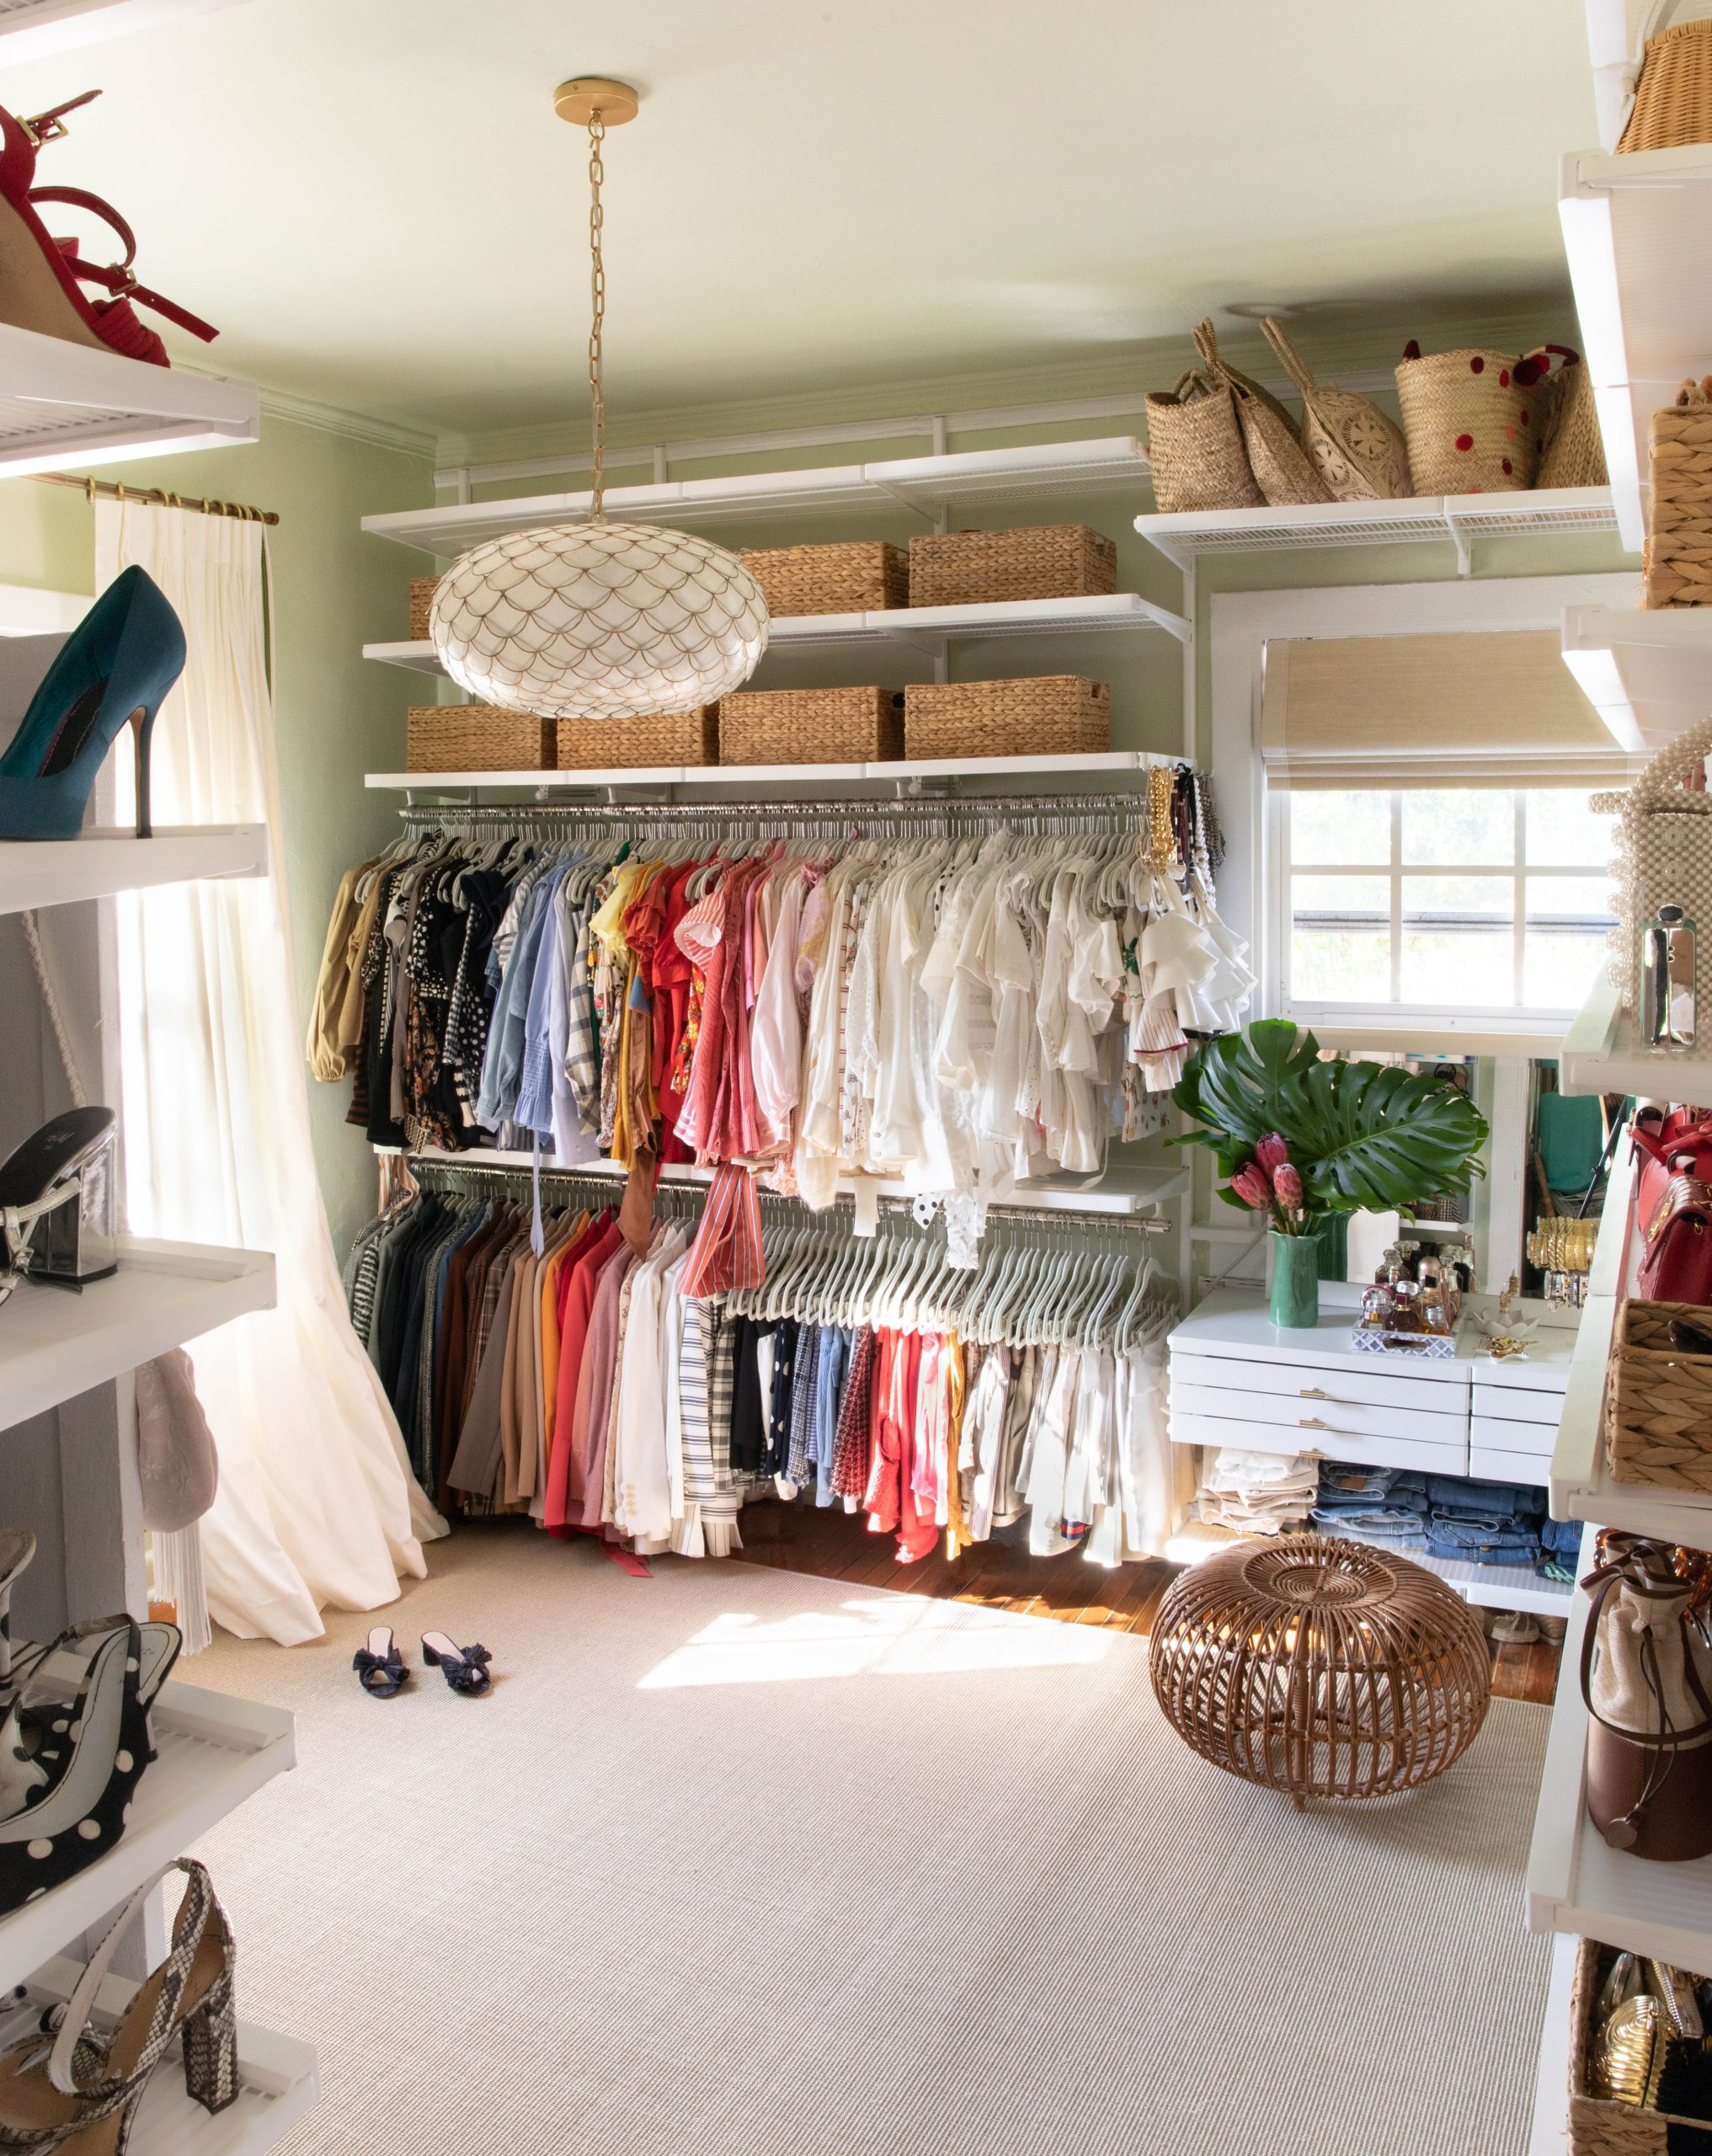 Stephanie Hill shares her Spring Cleaning My Master Closet on The Style Bungalow